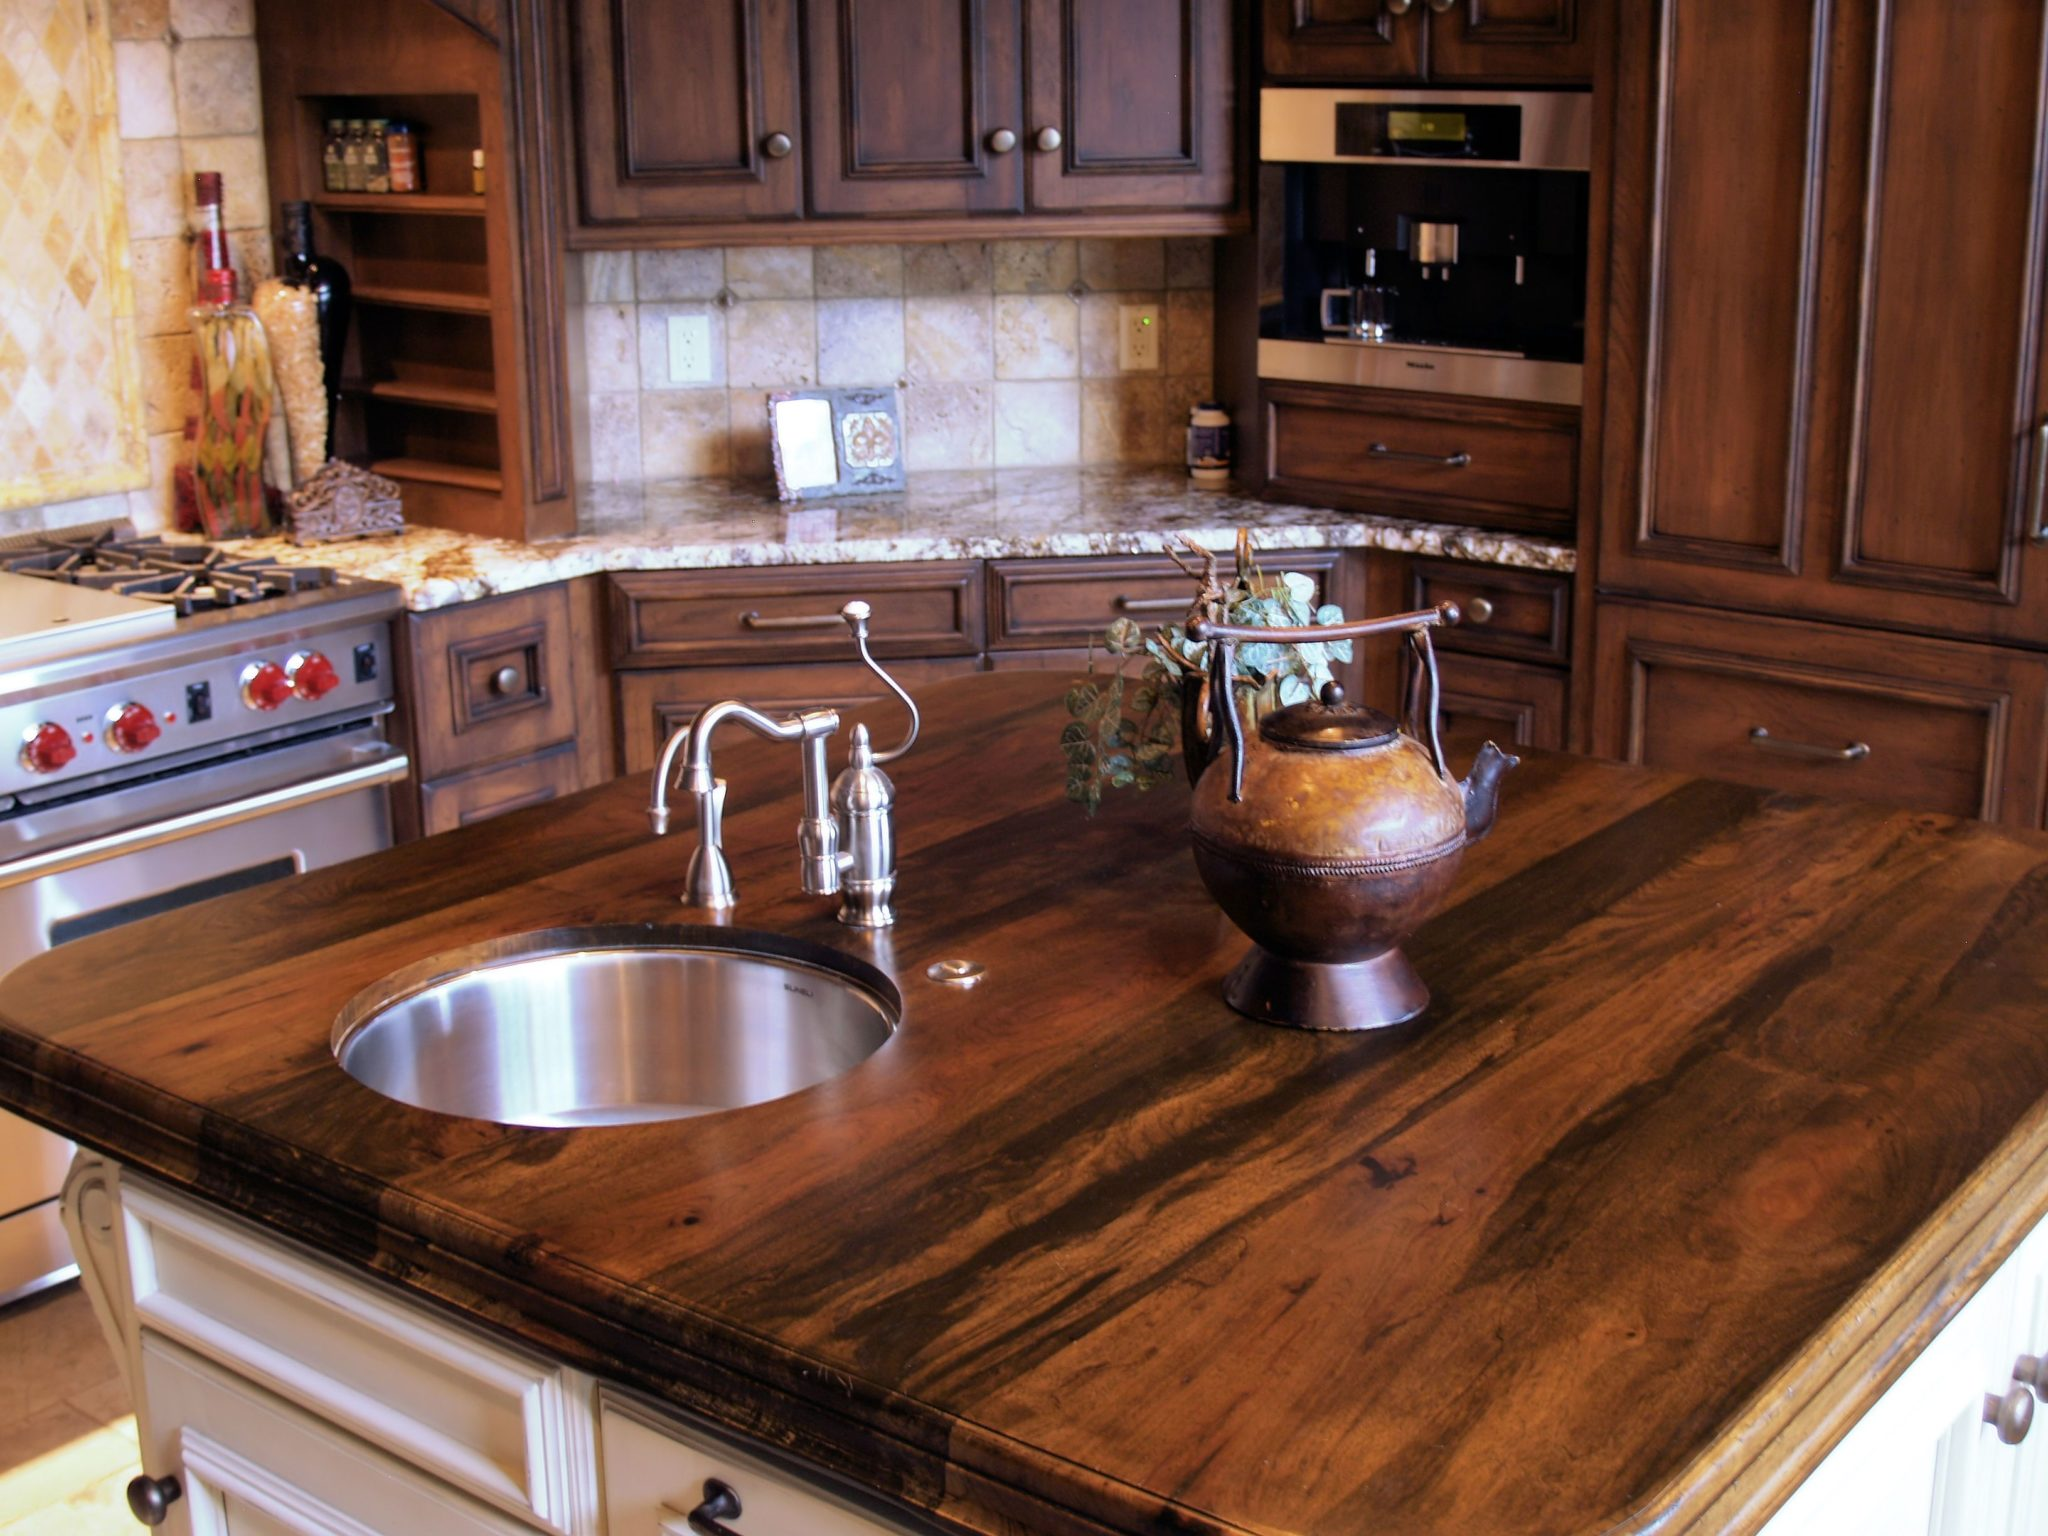 terrific wood countertop white kitchen island | Charming and Classy Wooden Kitchen Countertops